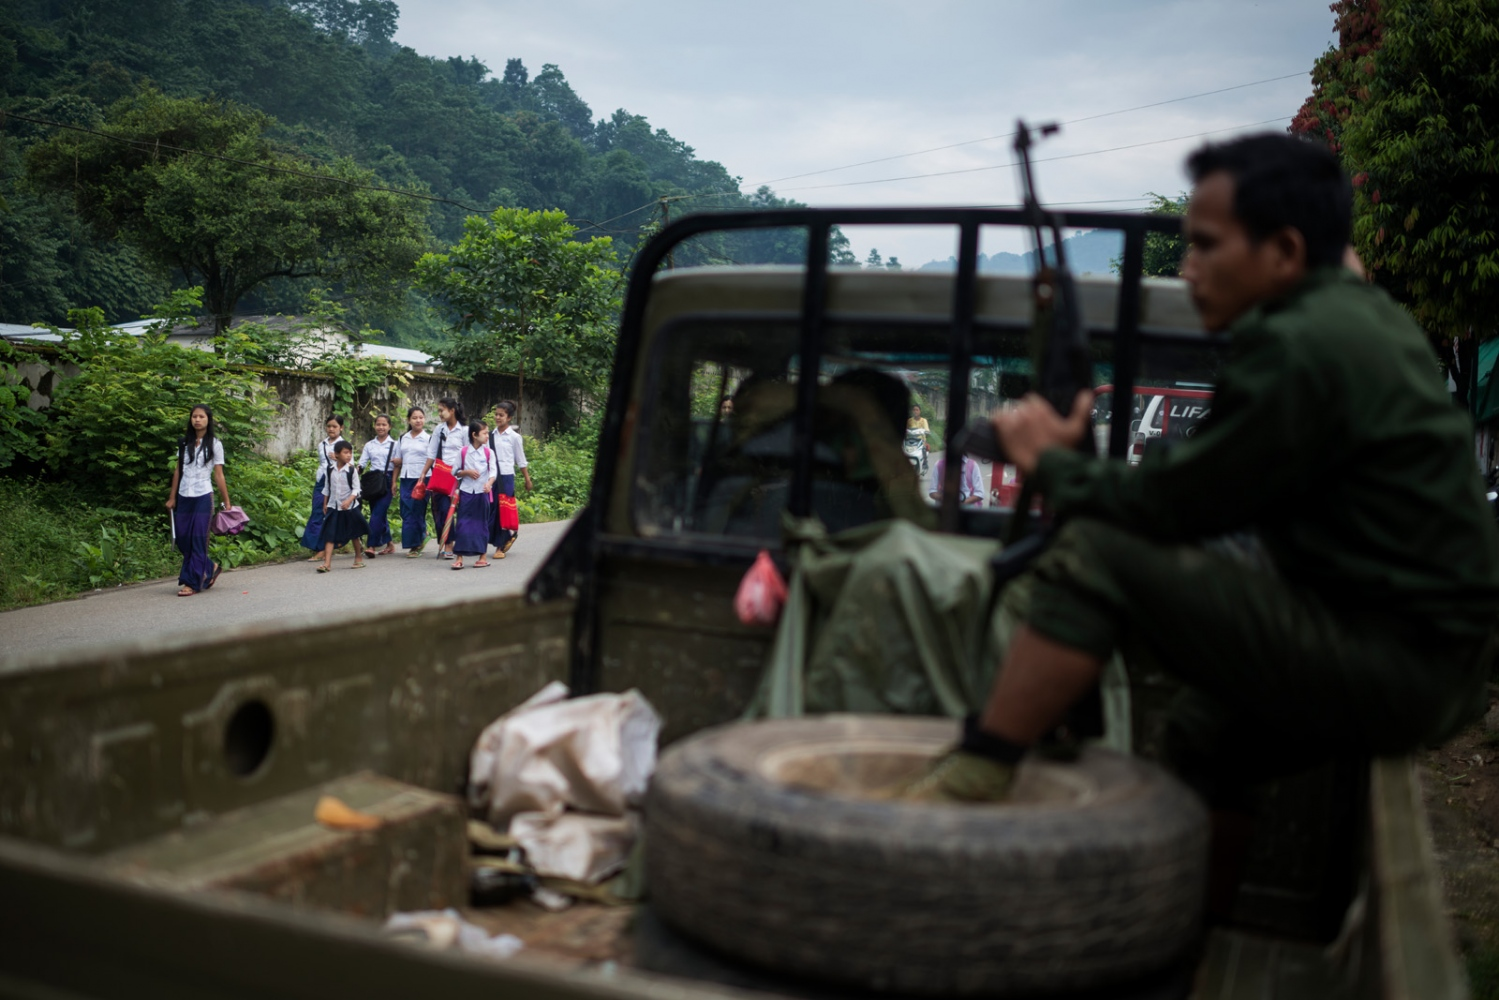 A group of children passes a K.I.A. rebell truck on their way to school in Laiza, Kachin state, Myanmar.